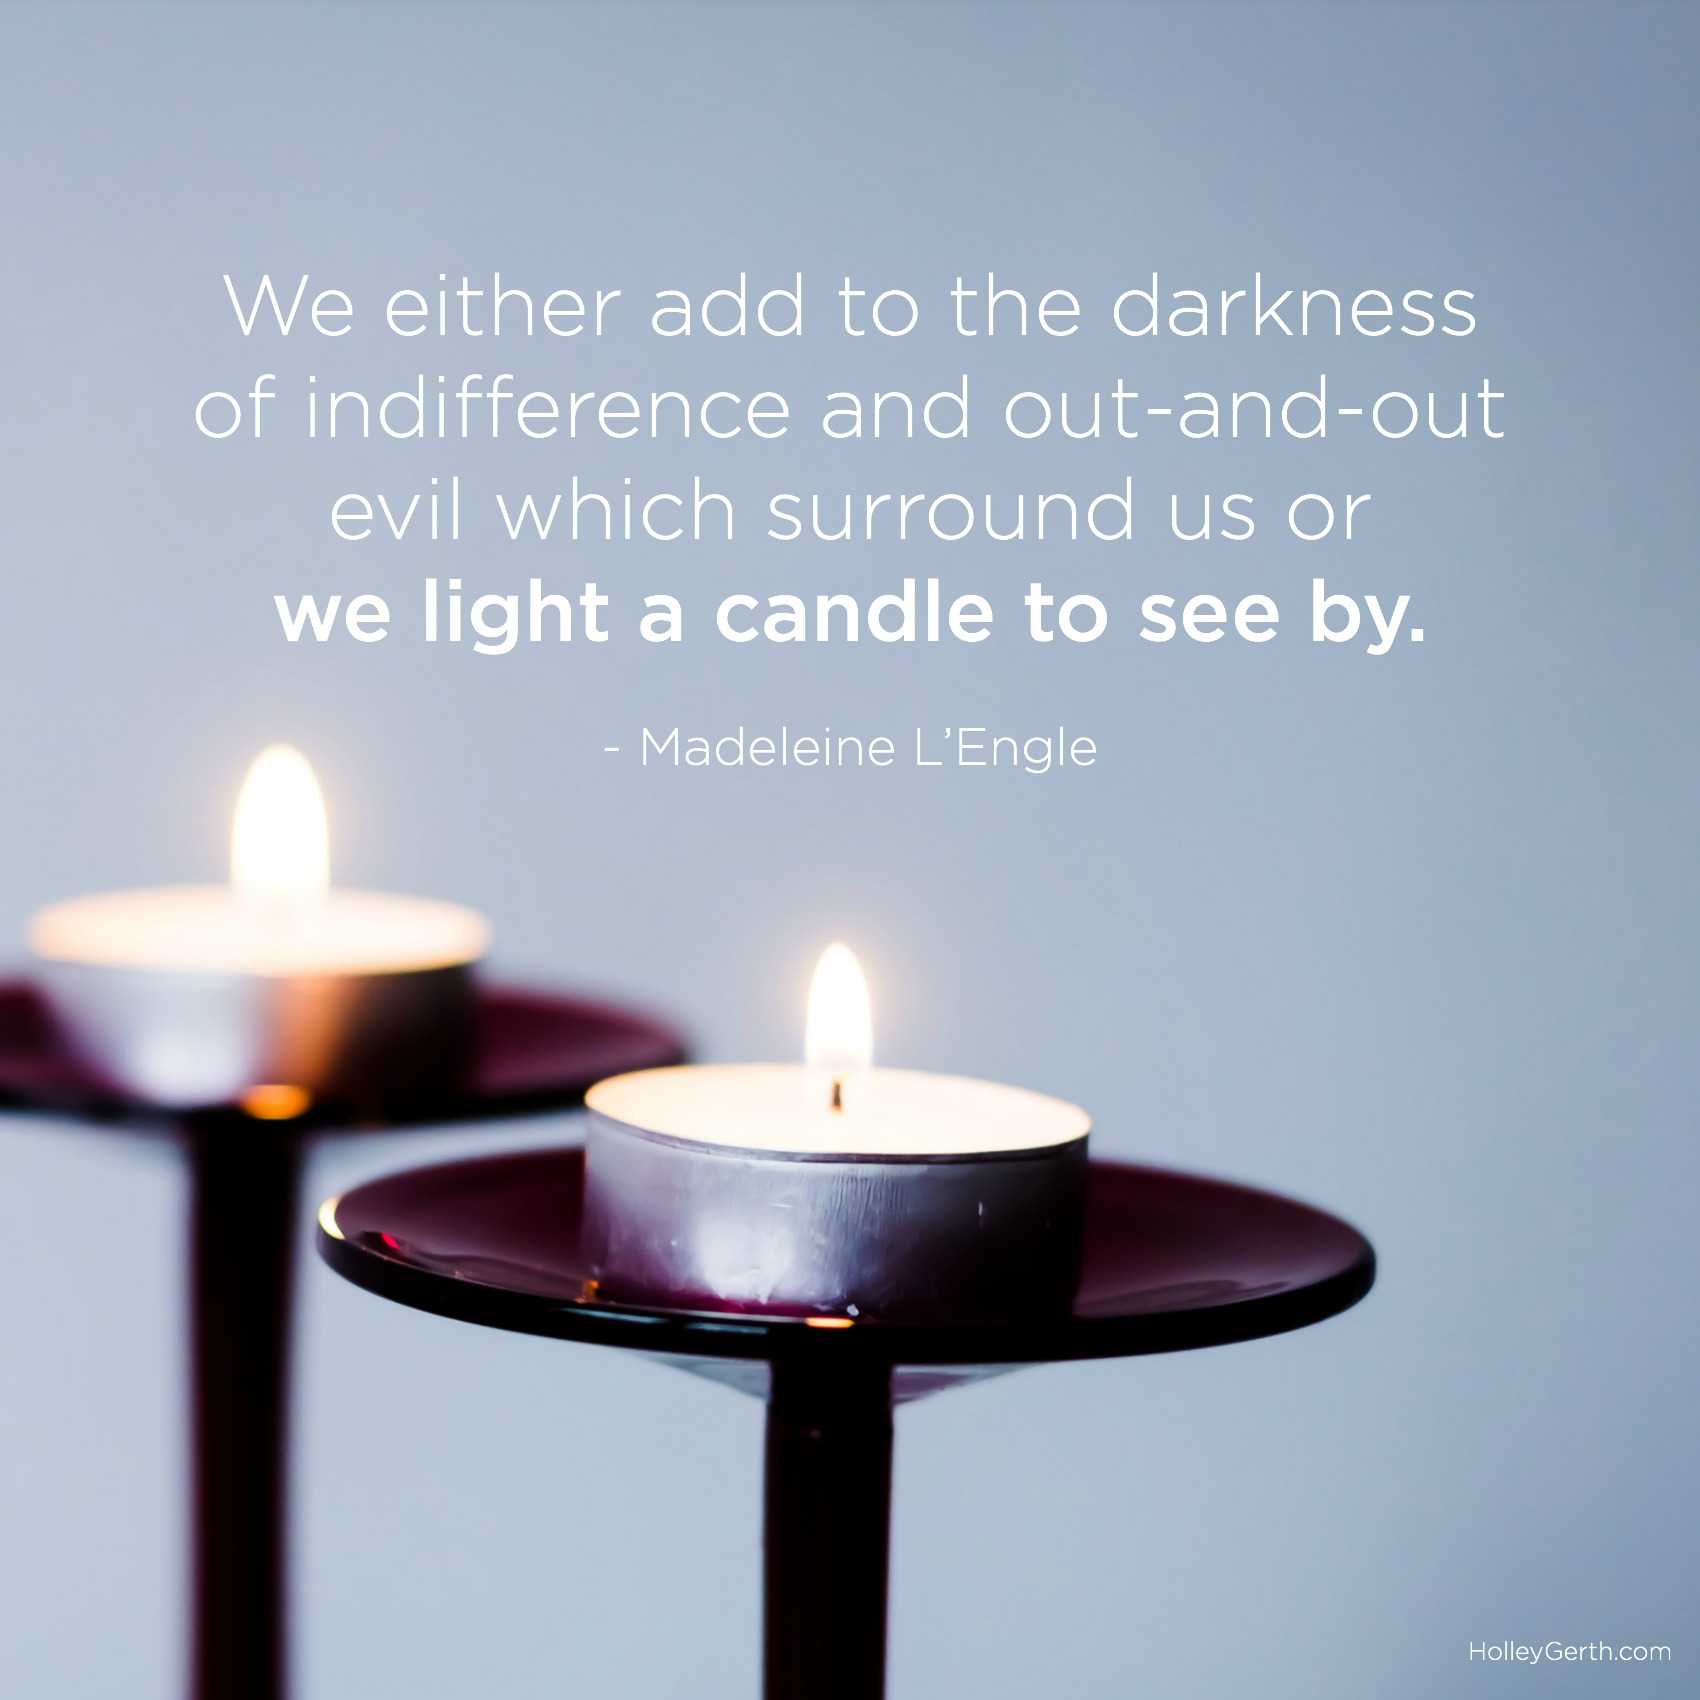 We either add to the darkness of indifference and out-and-out evil which surround us or we light a candle to see by. - Madeleine L'Engle